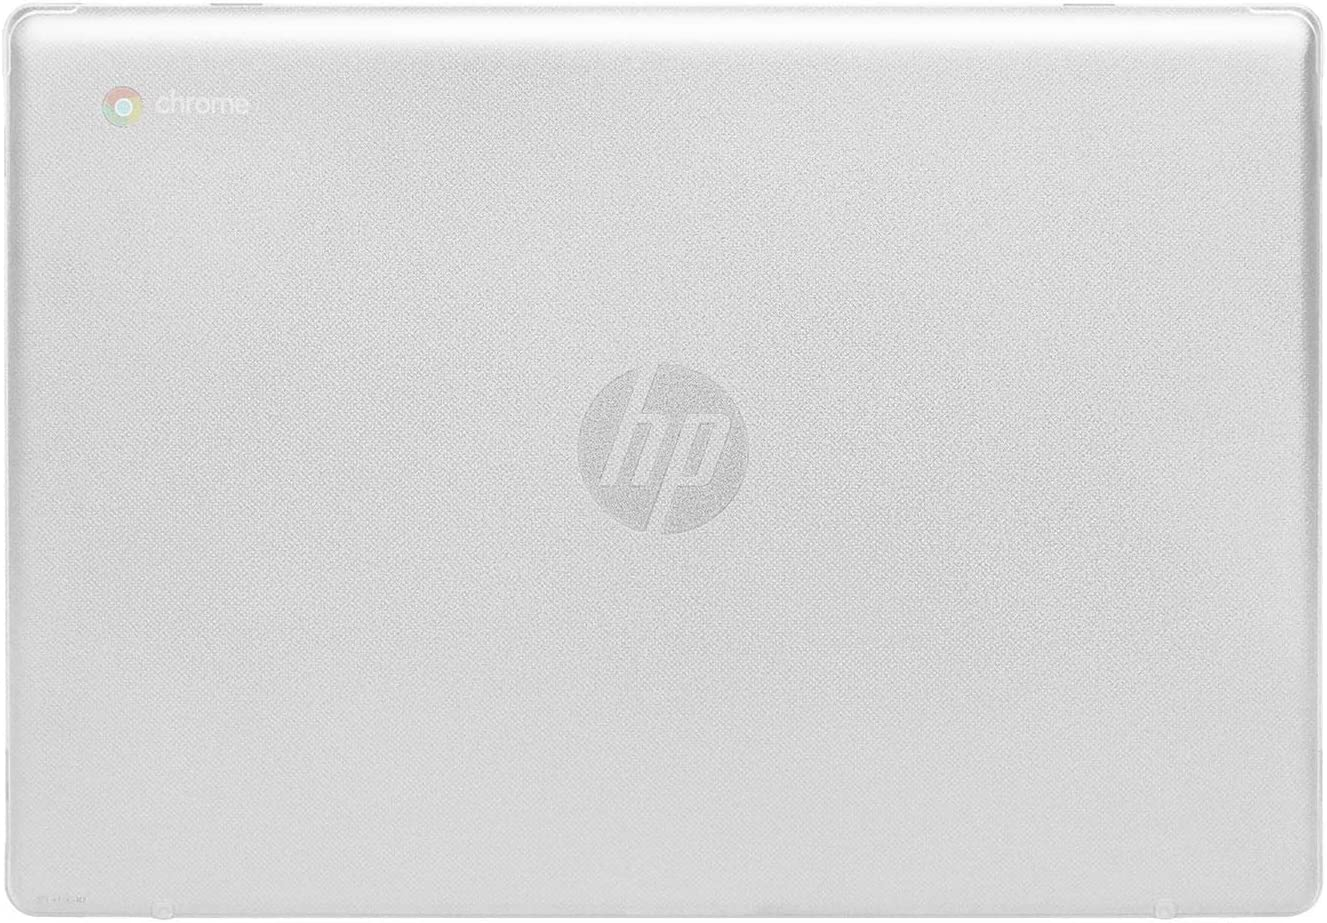 "mCover Hard Shell Case for 2020 14"" HP Chromebook 14 G6 (NOT Compatible with Older HP C14 G1 / G2 / G3 / G4/ G5 Series) laptops (Clear)"